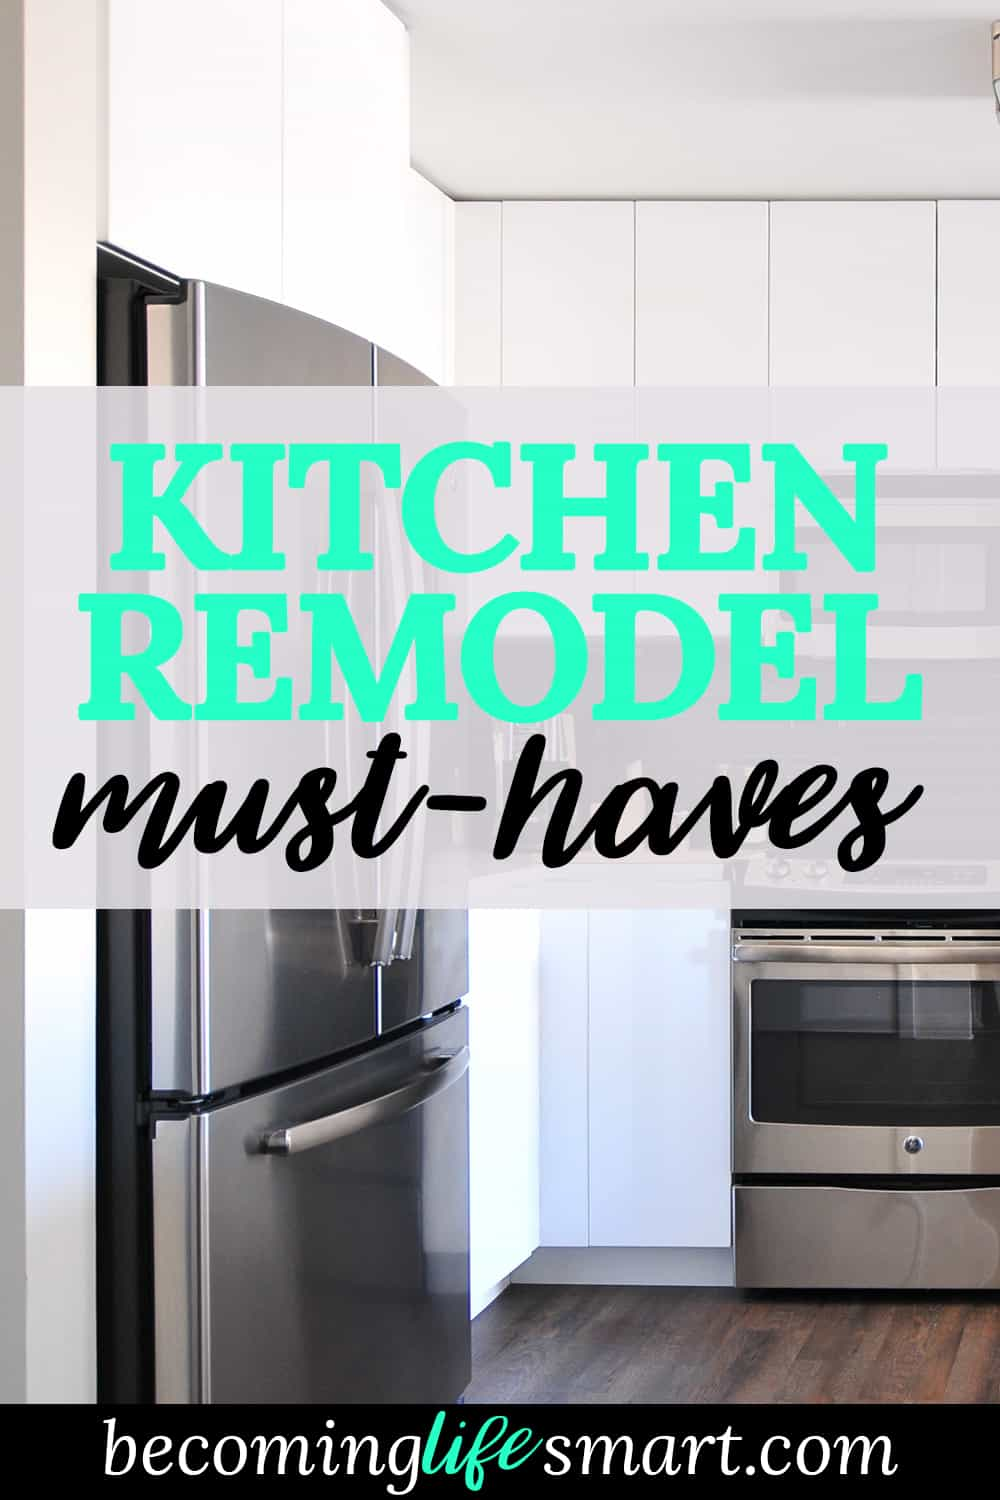 These Are Great Ideas For A Dream Kitchen Must Haves! I Love All Of